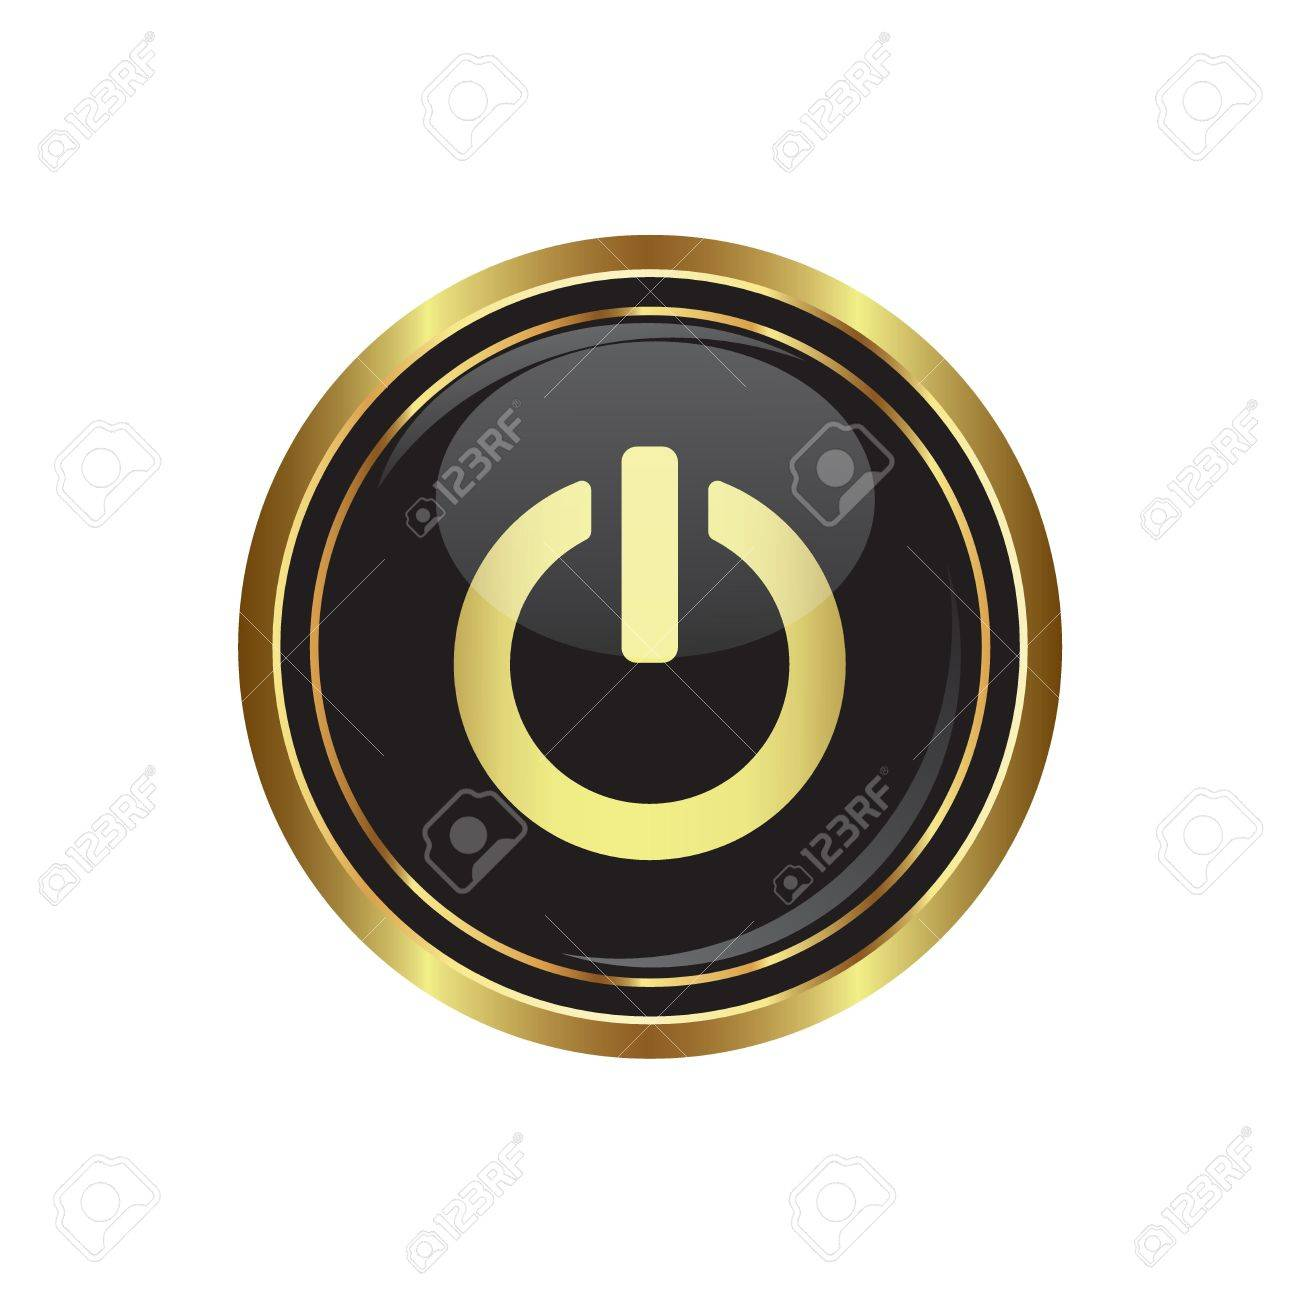 Power icon on black with gold button illustration Stock Vector - 18699989